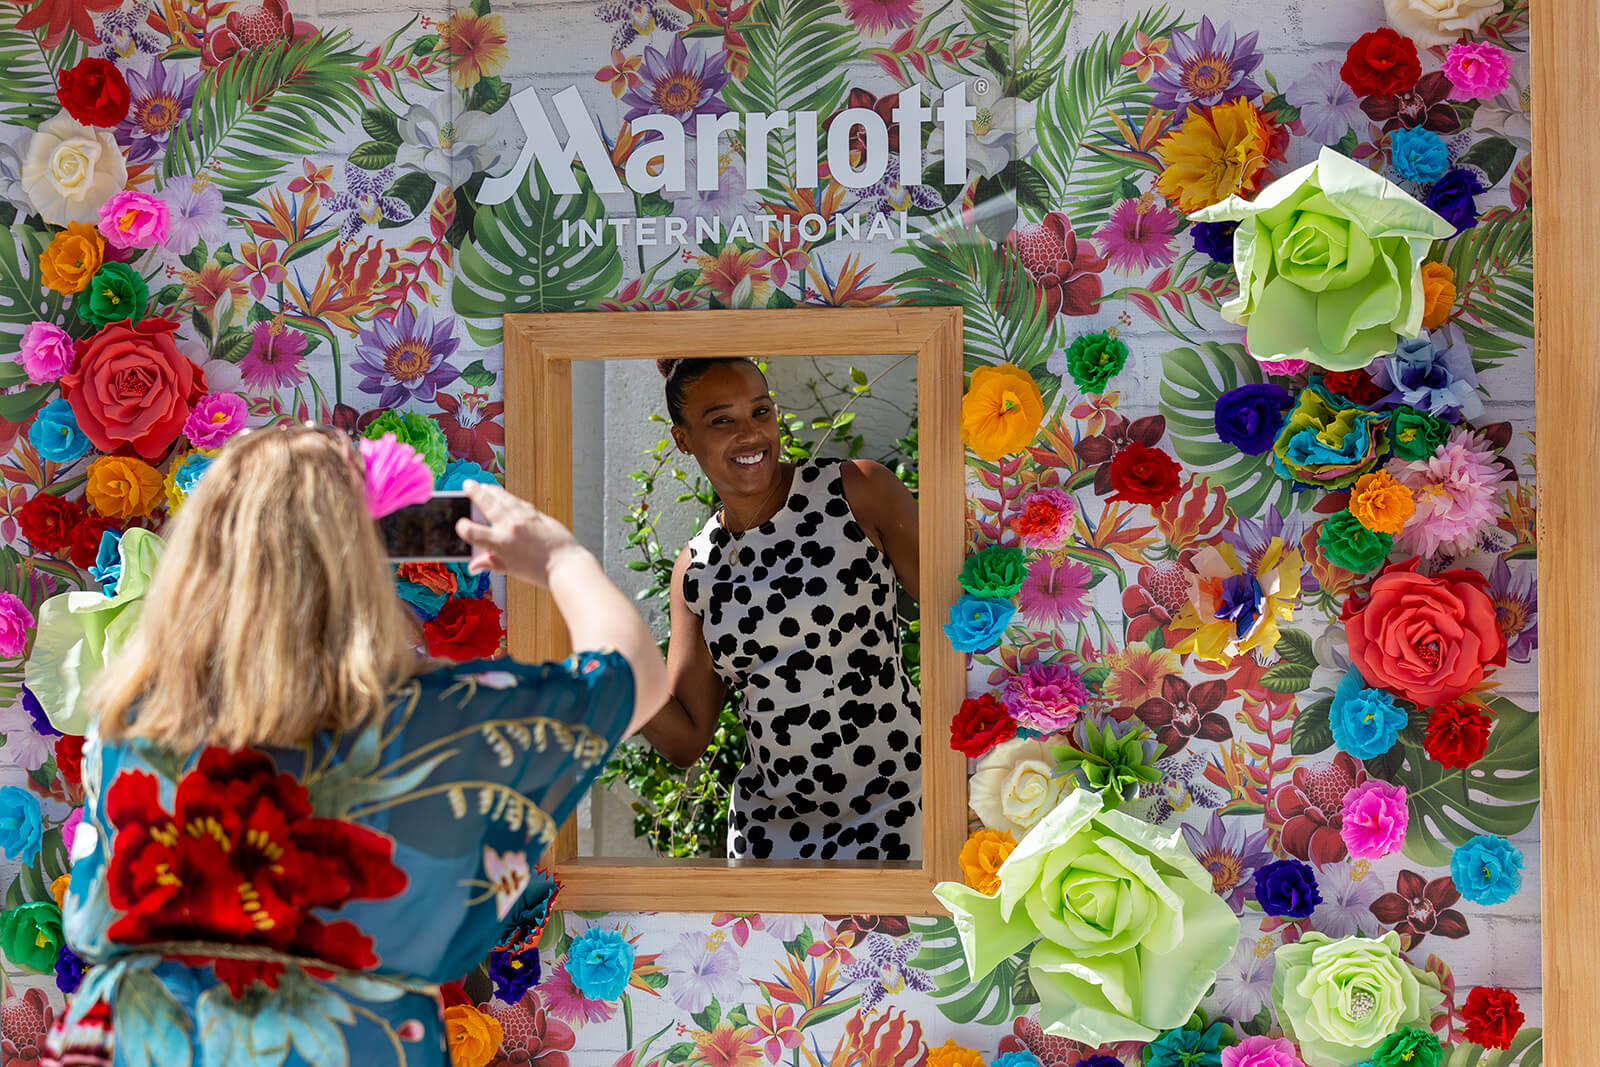 THE FUTURE OF MEETINGS & EVENTS at Marriott International